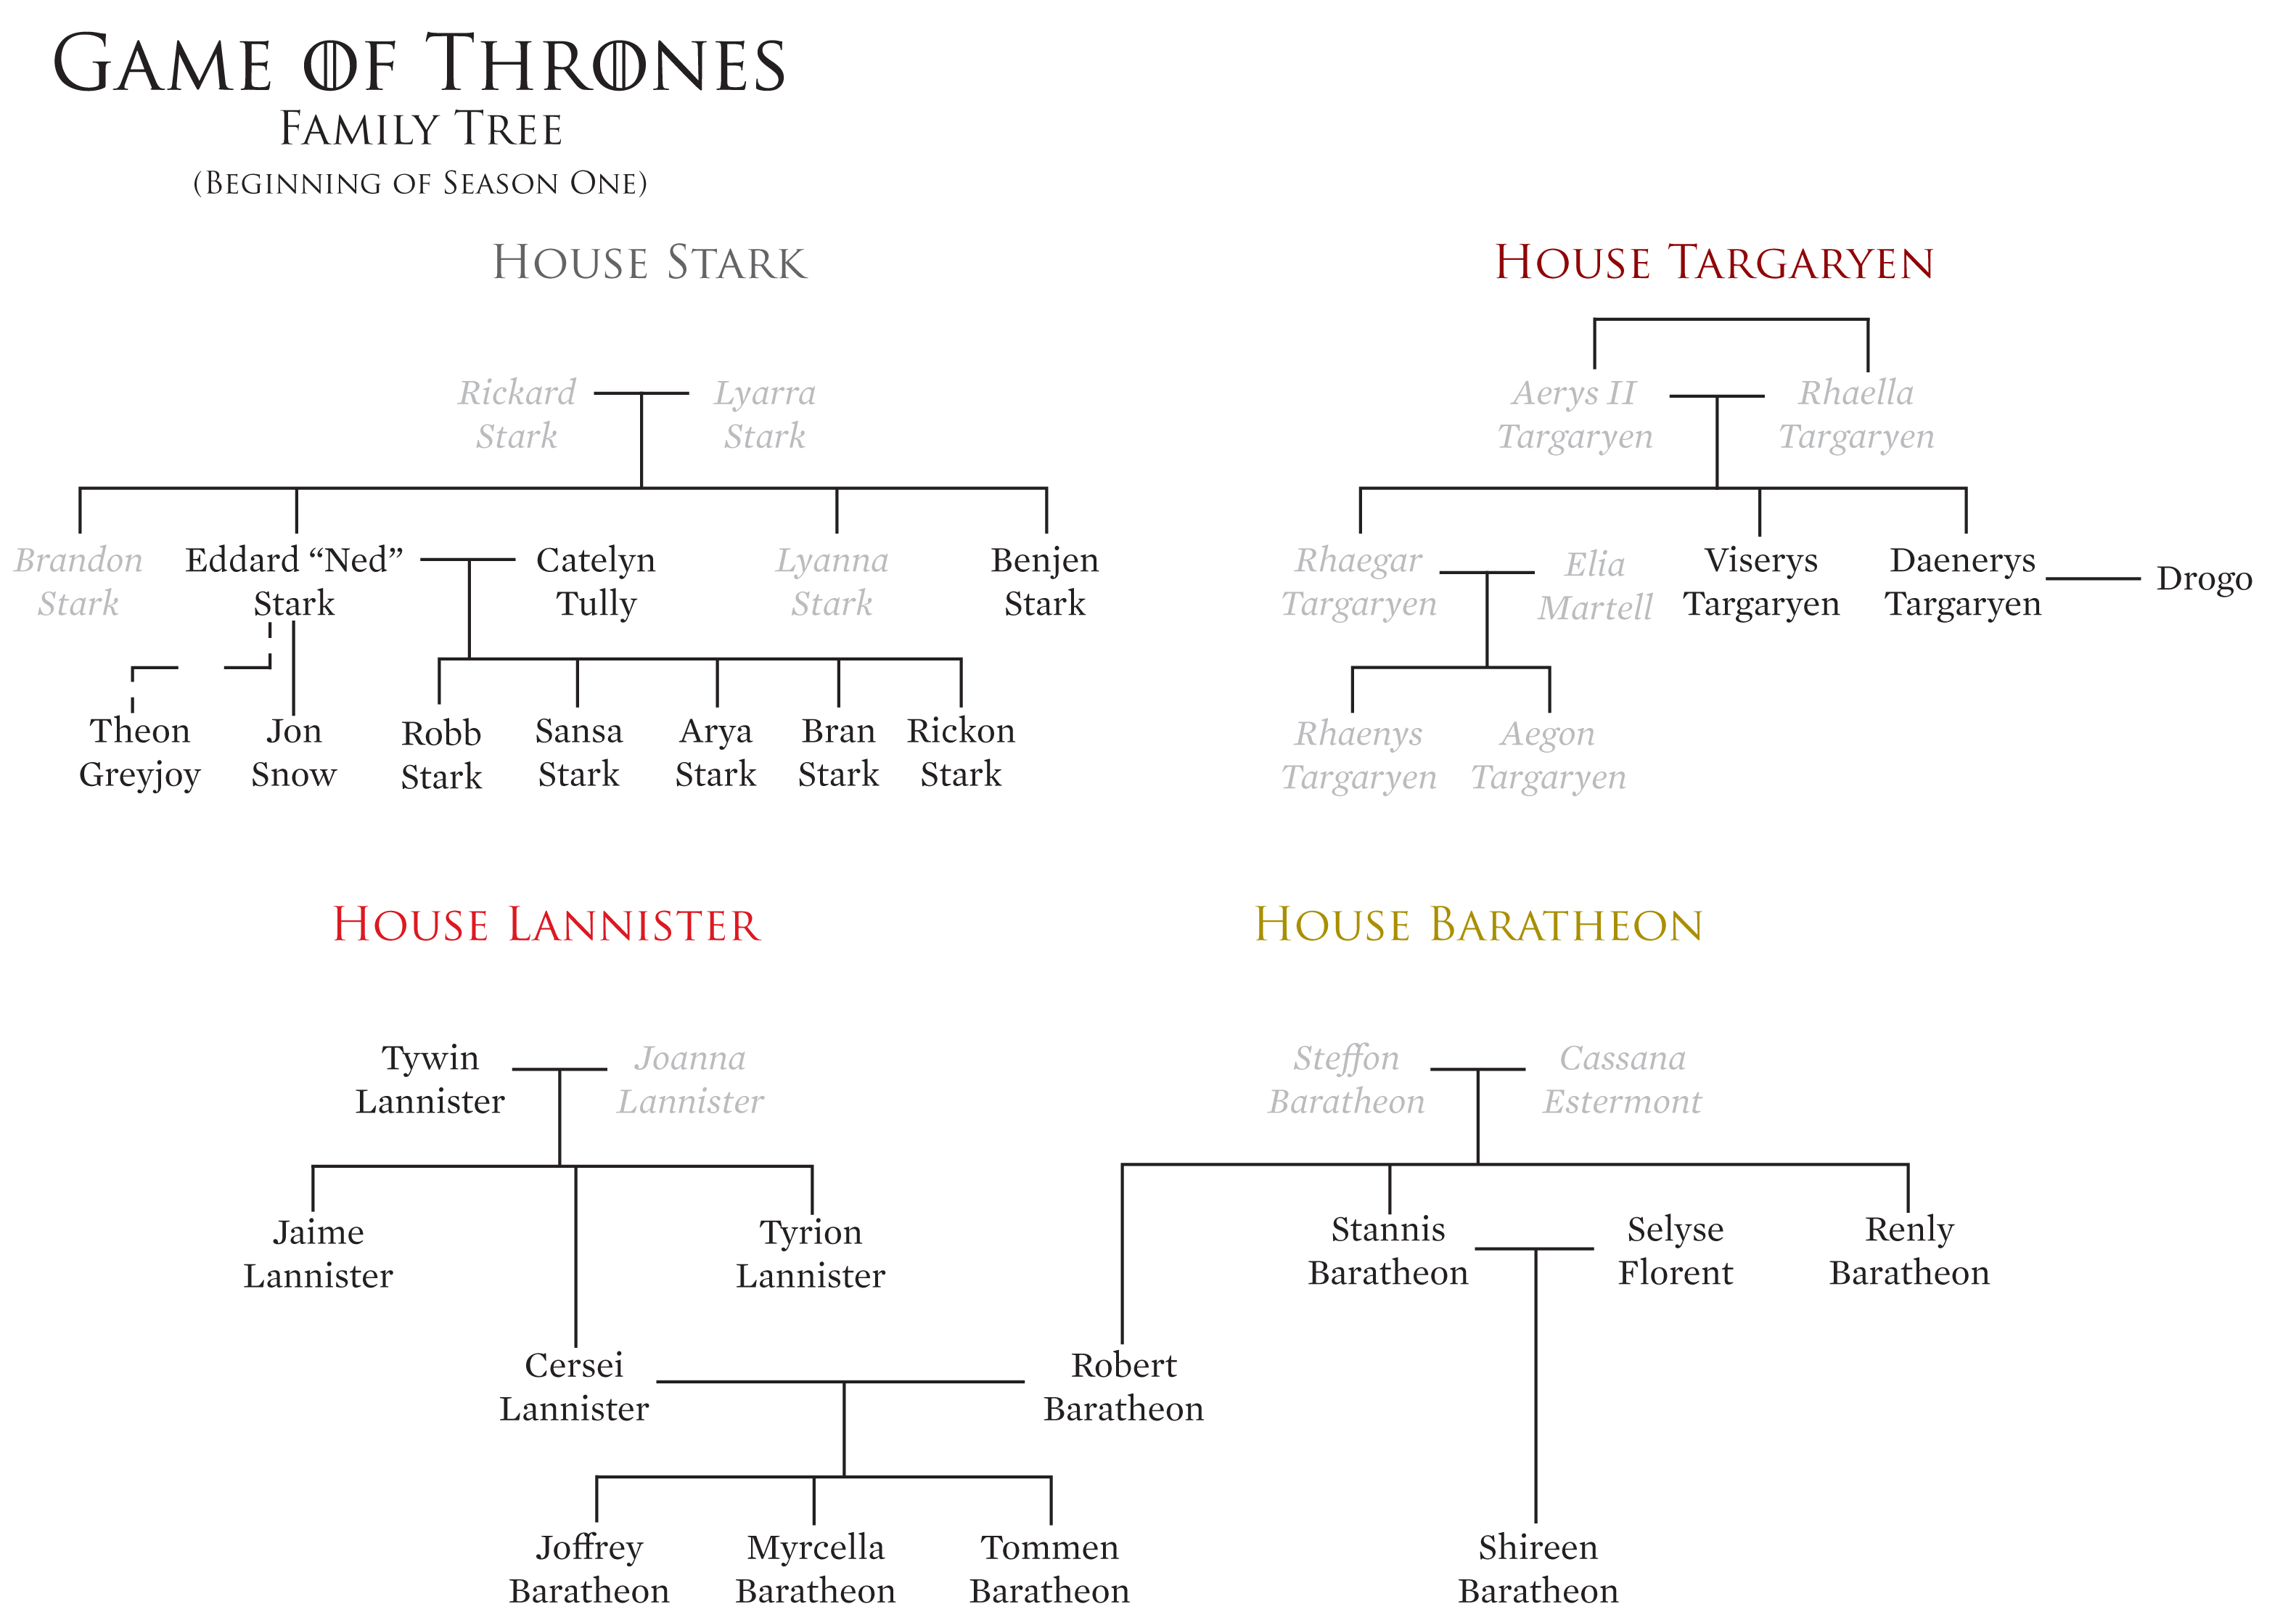 The complicated Game of Thrones family tree only adds more and more twists and turns as the series goes on.